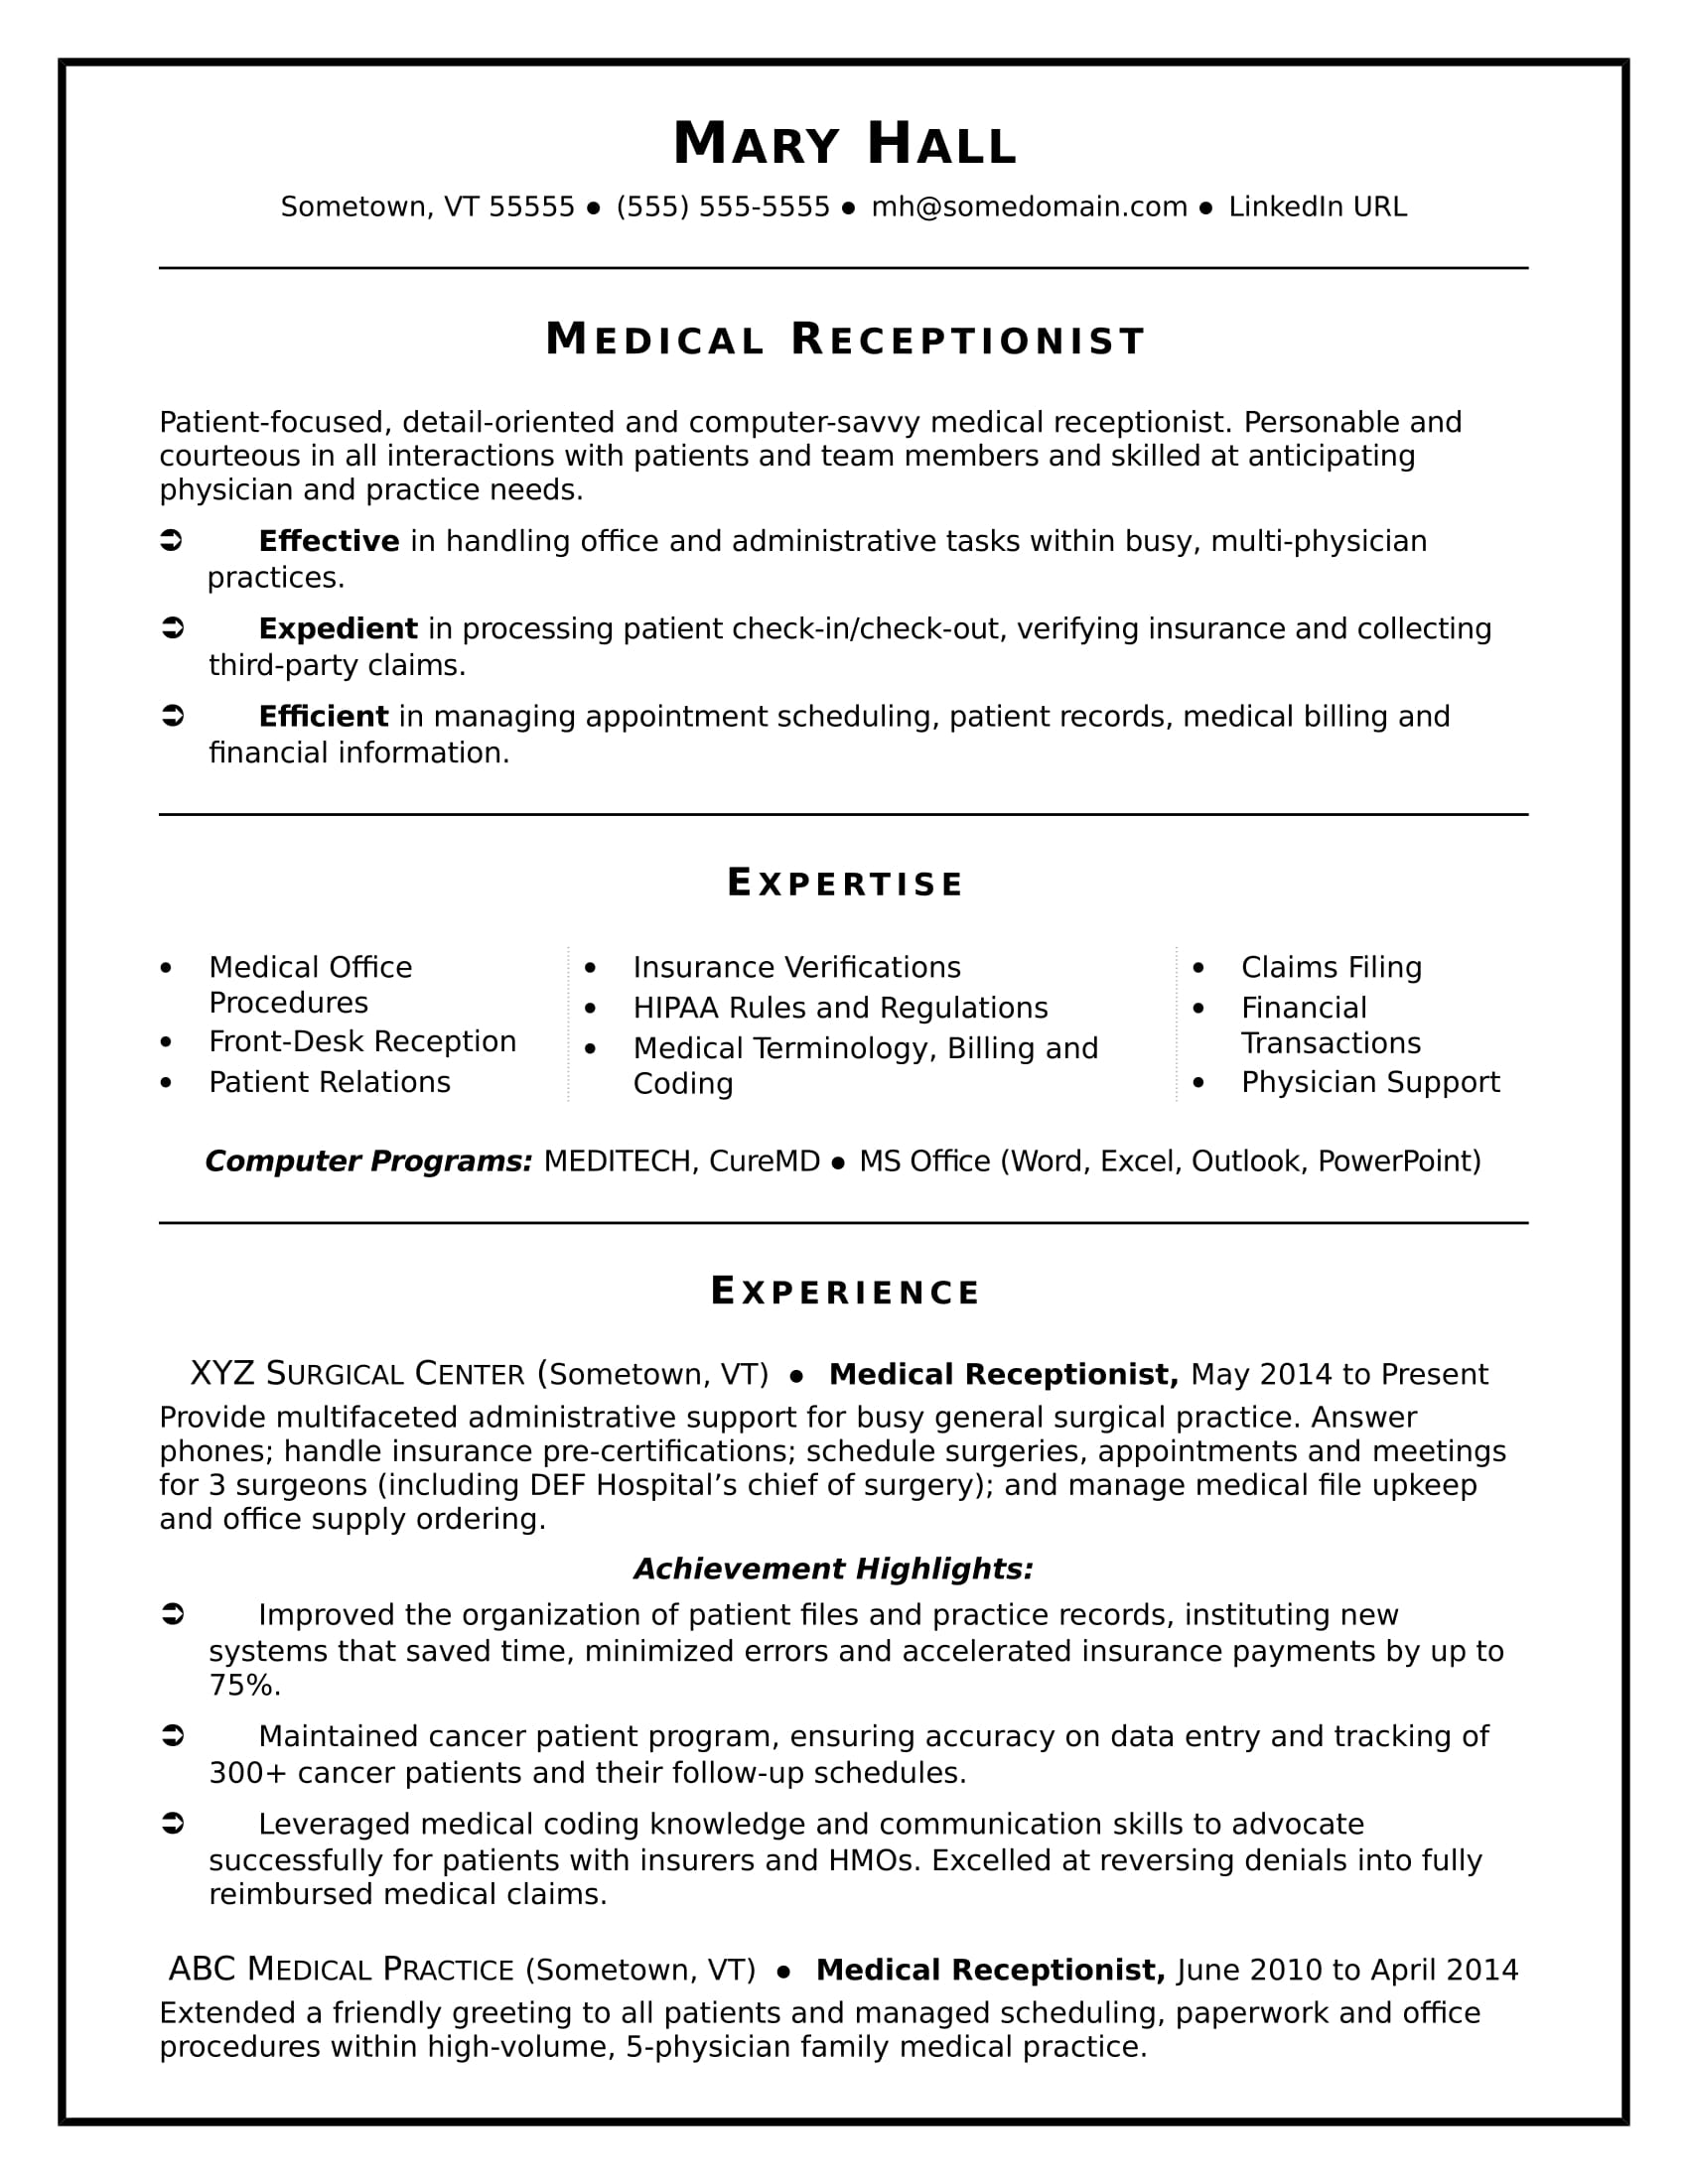 Medical Receptionist Resume Sample  Medical Biller Resume Sample